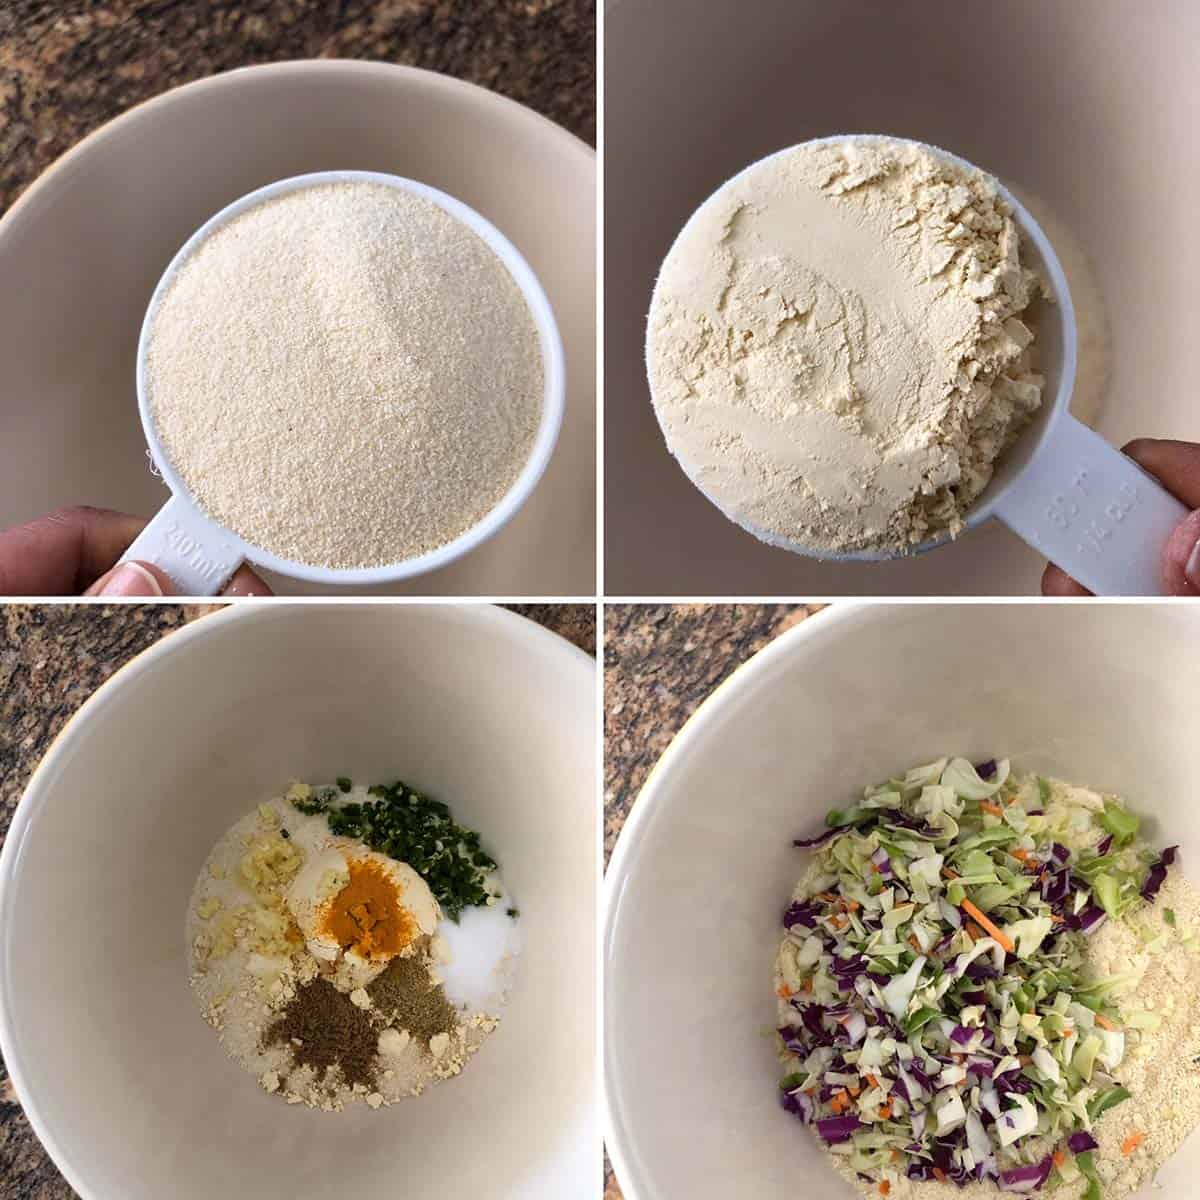 Photos of sooji/ semolina flour, besan, spices and chopped veggies